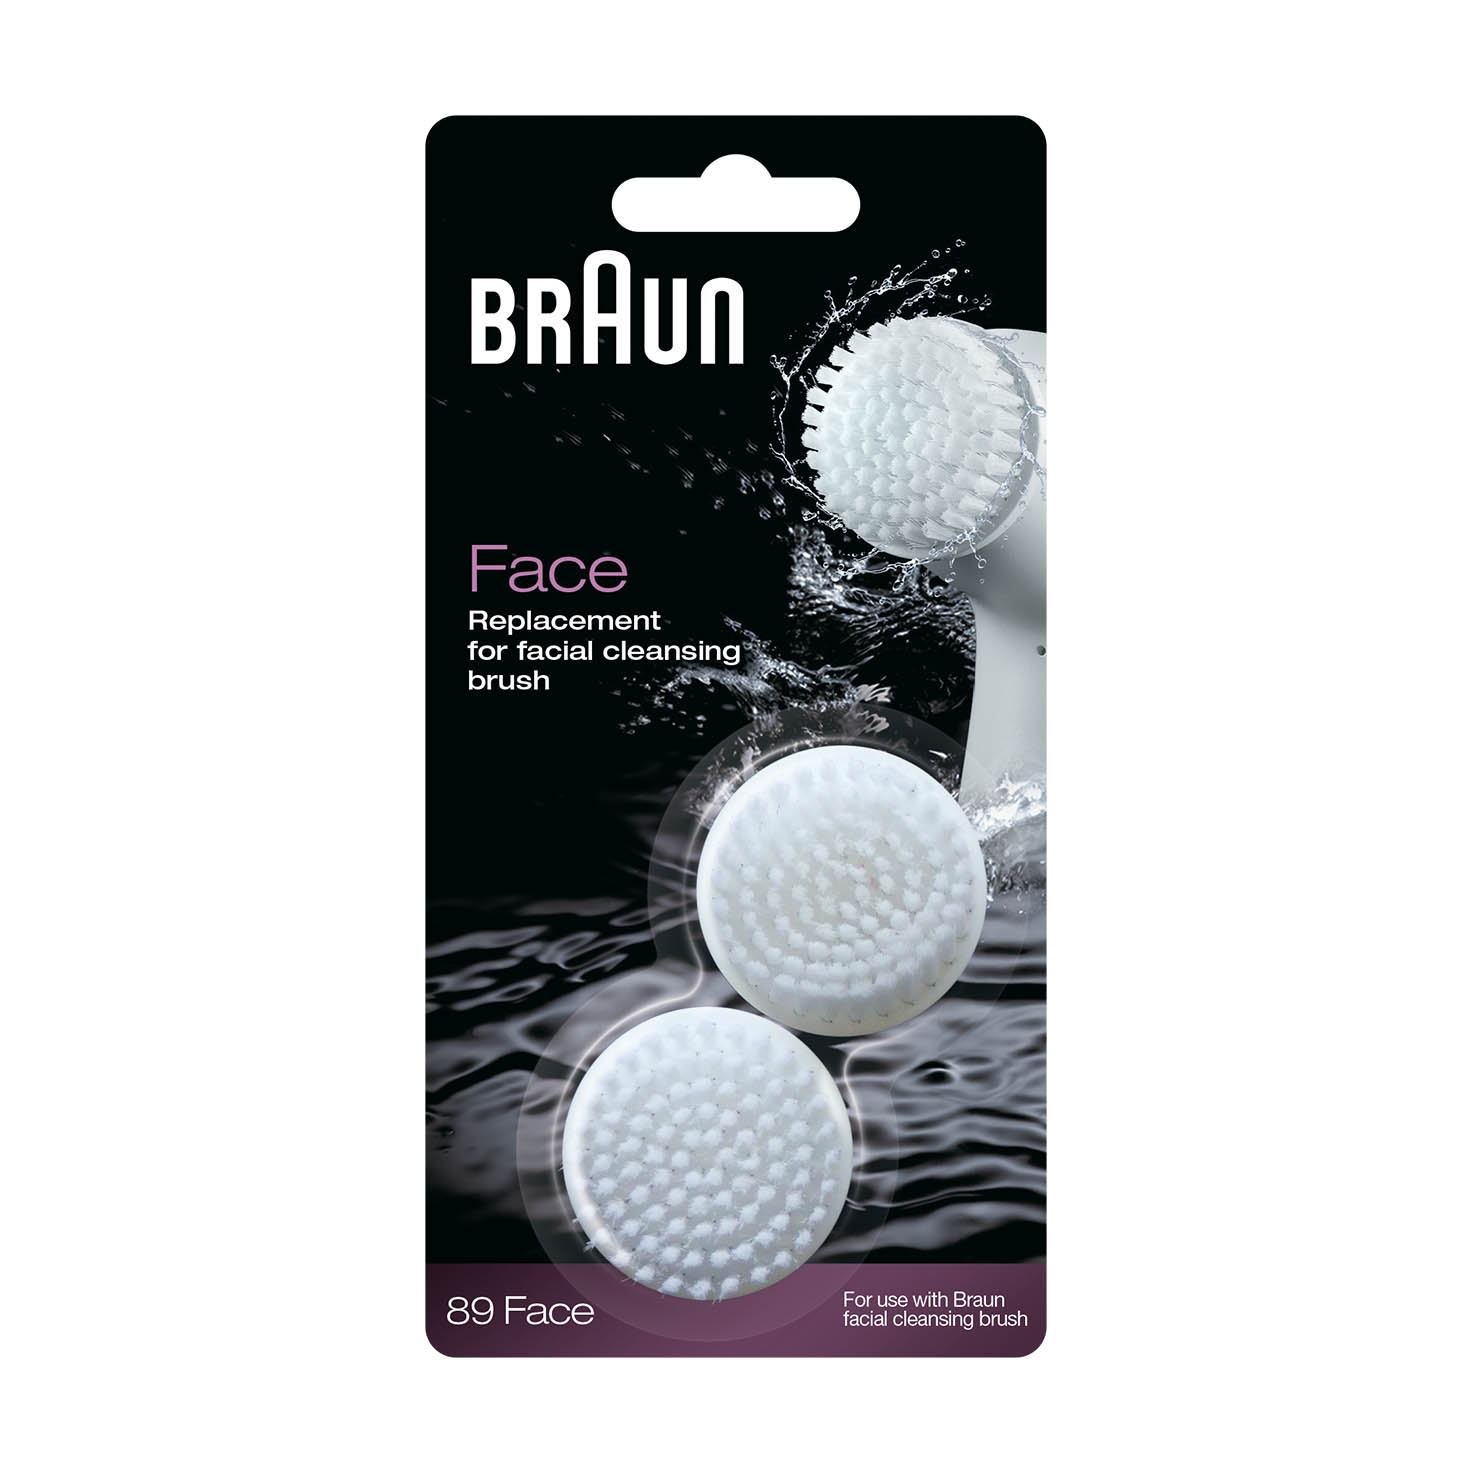 Braun facial cleansing brush refill duo pack